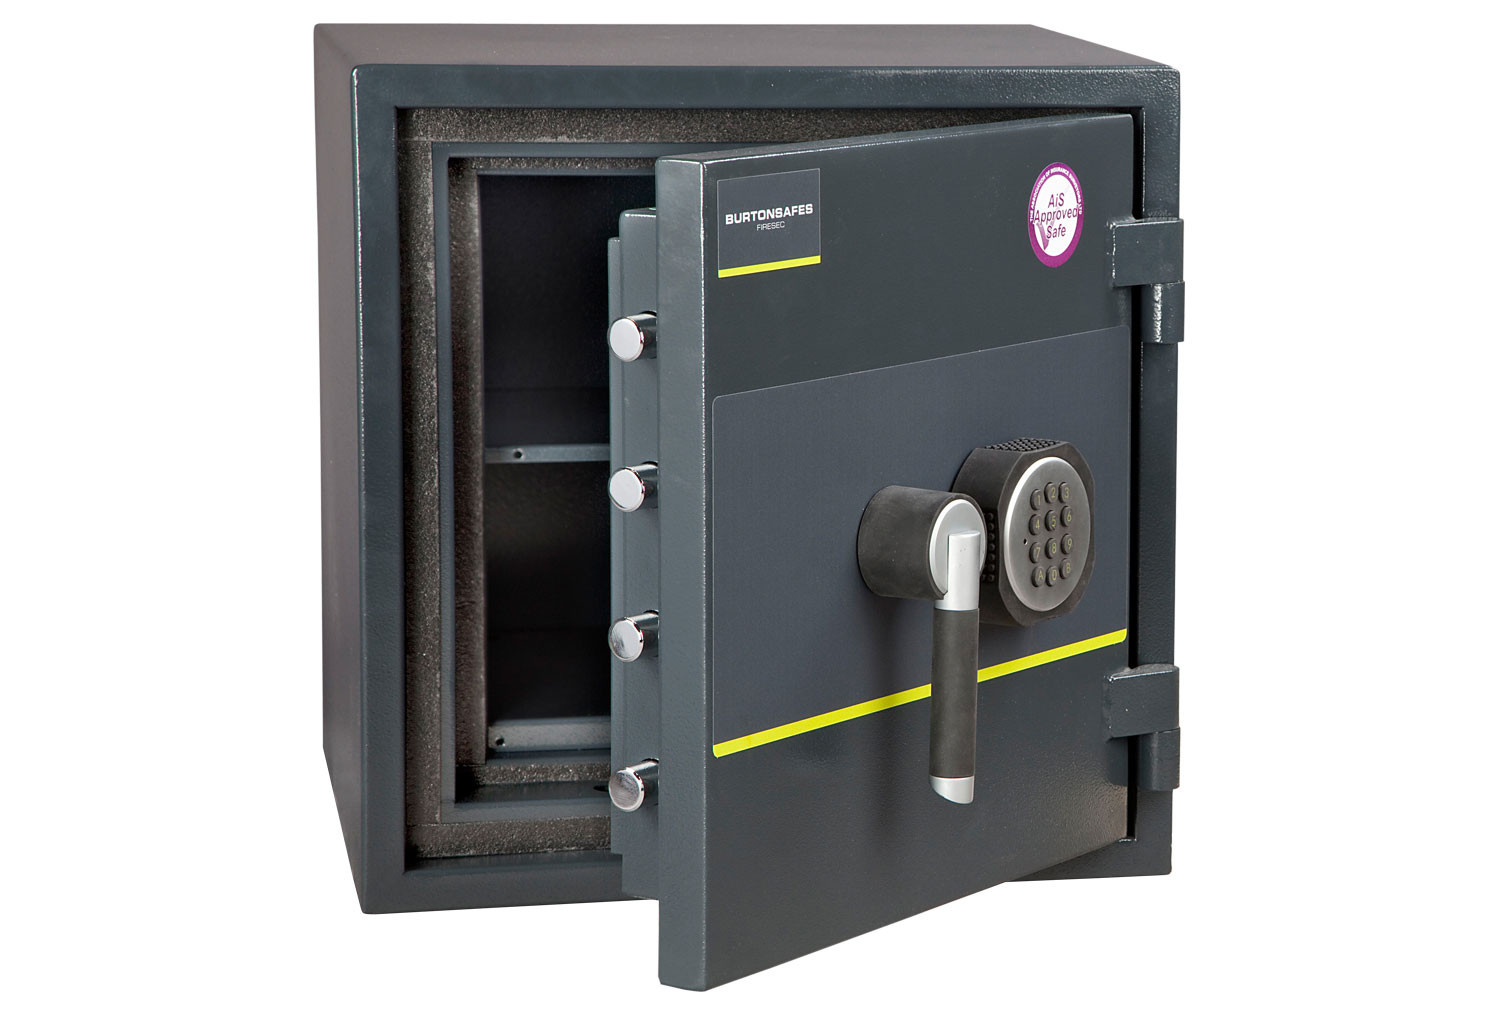 Burton Firesec 10/60 Fire Safe Size 1 With Electronic Lock (31ltrs)